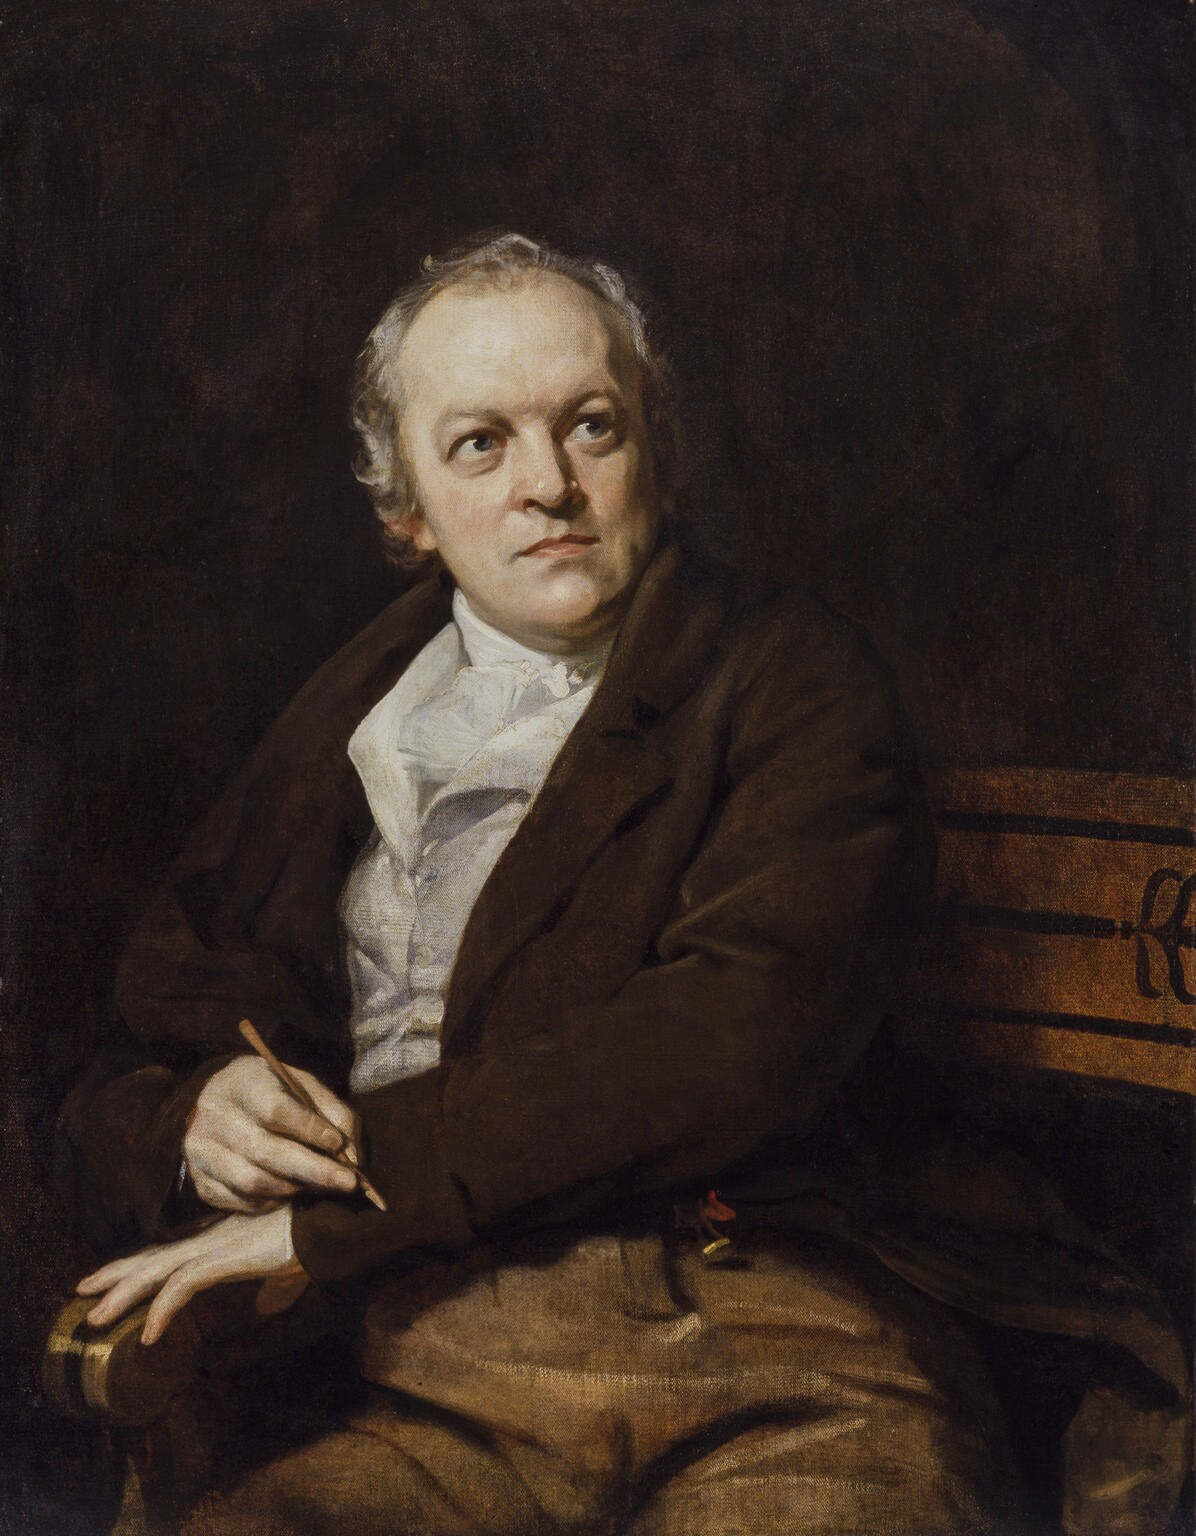 william blake by thomas phillips, wikipedia